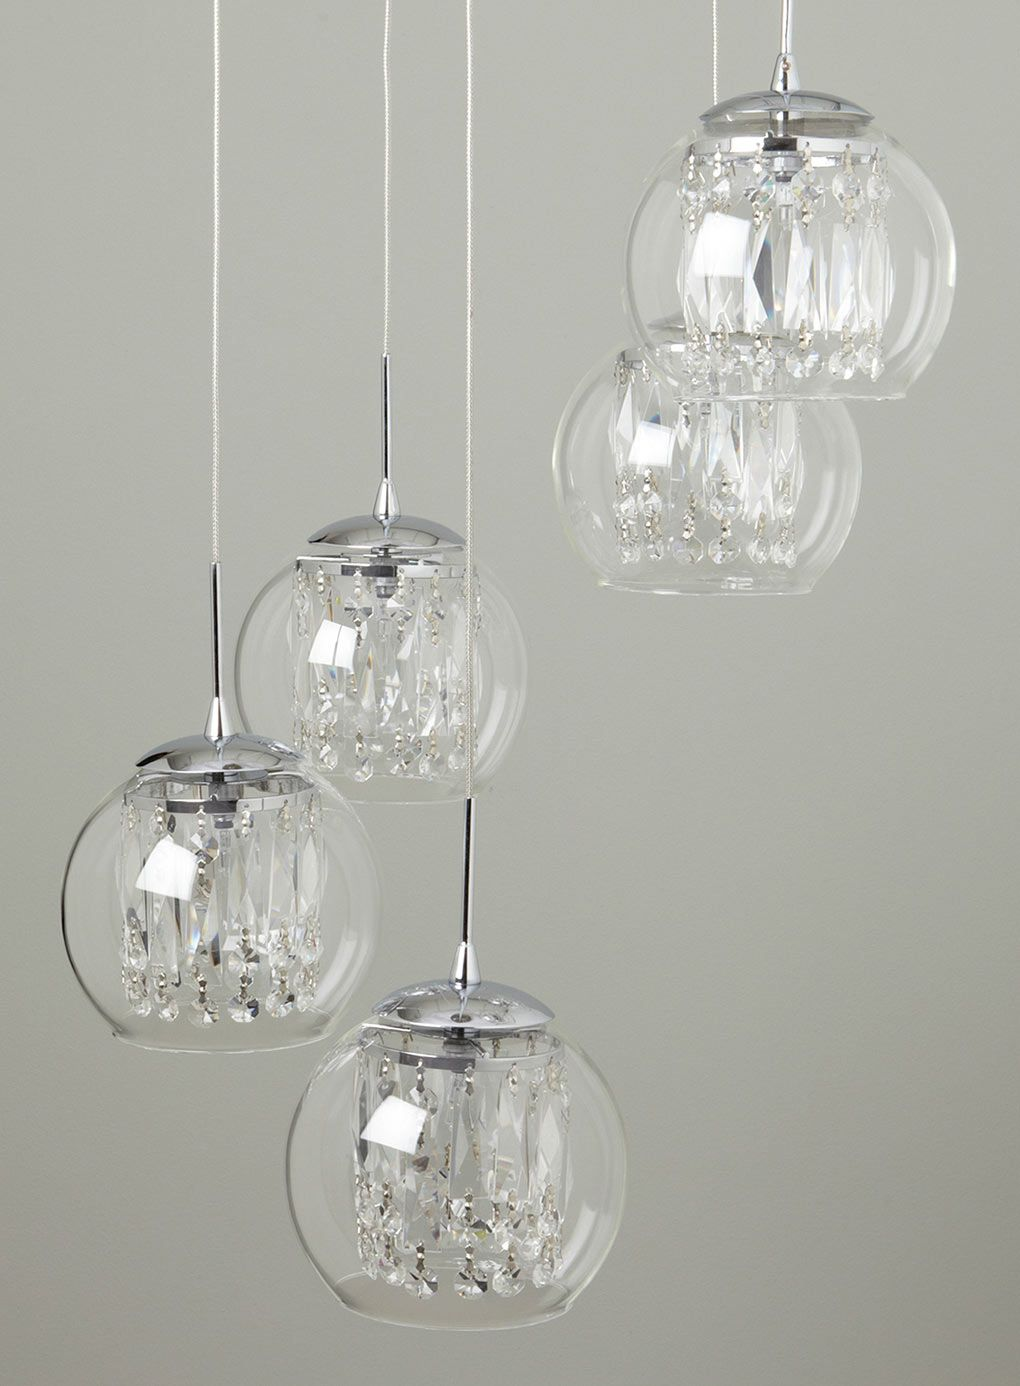 Smoke Nakita Cluster Pendant - ceiling lights - Lighting - BHS ...